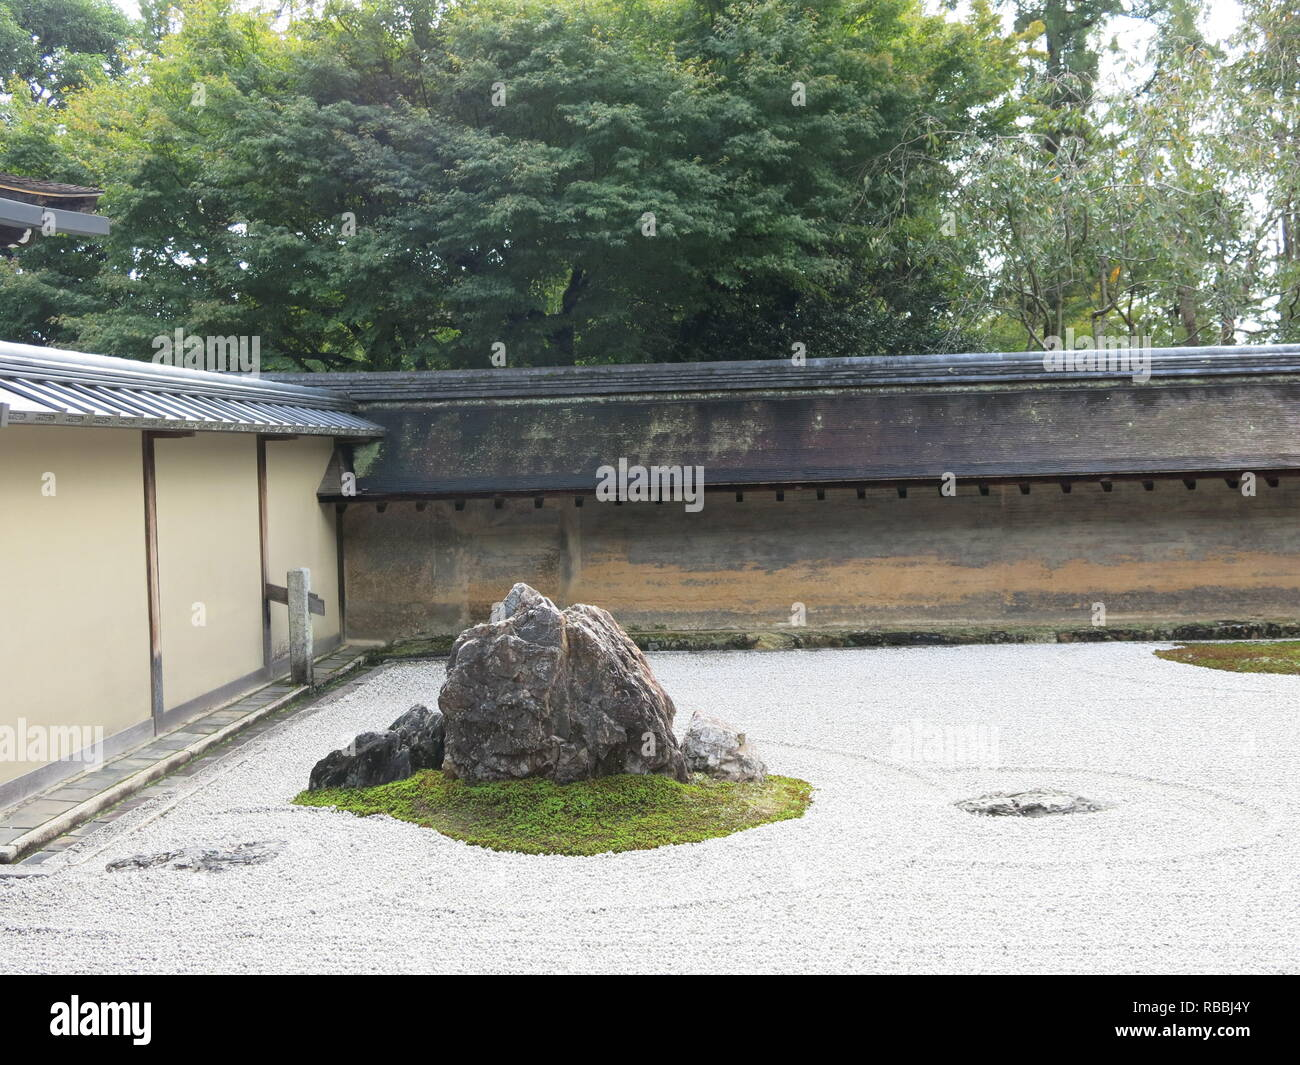 The famous dry rock garden at Ryoan-ji Zen Buddhist temple in Kyoto; featuring carefully placed boulders, moss and raked gravel against a clay wall - Stock Image